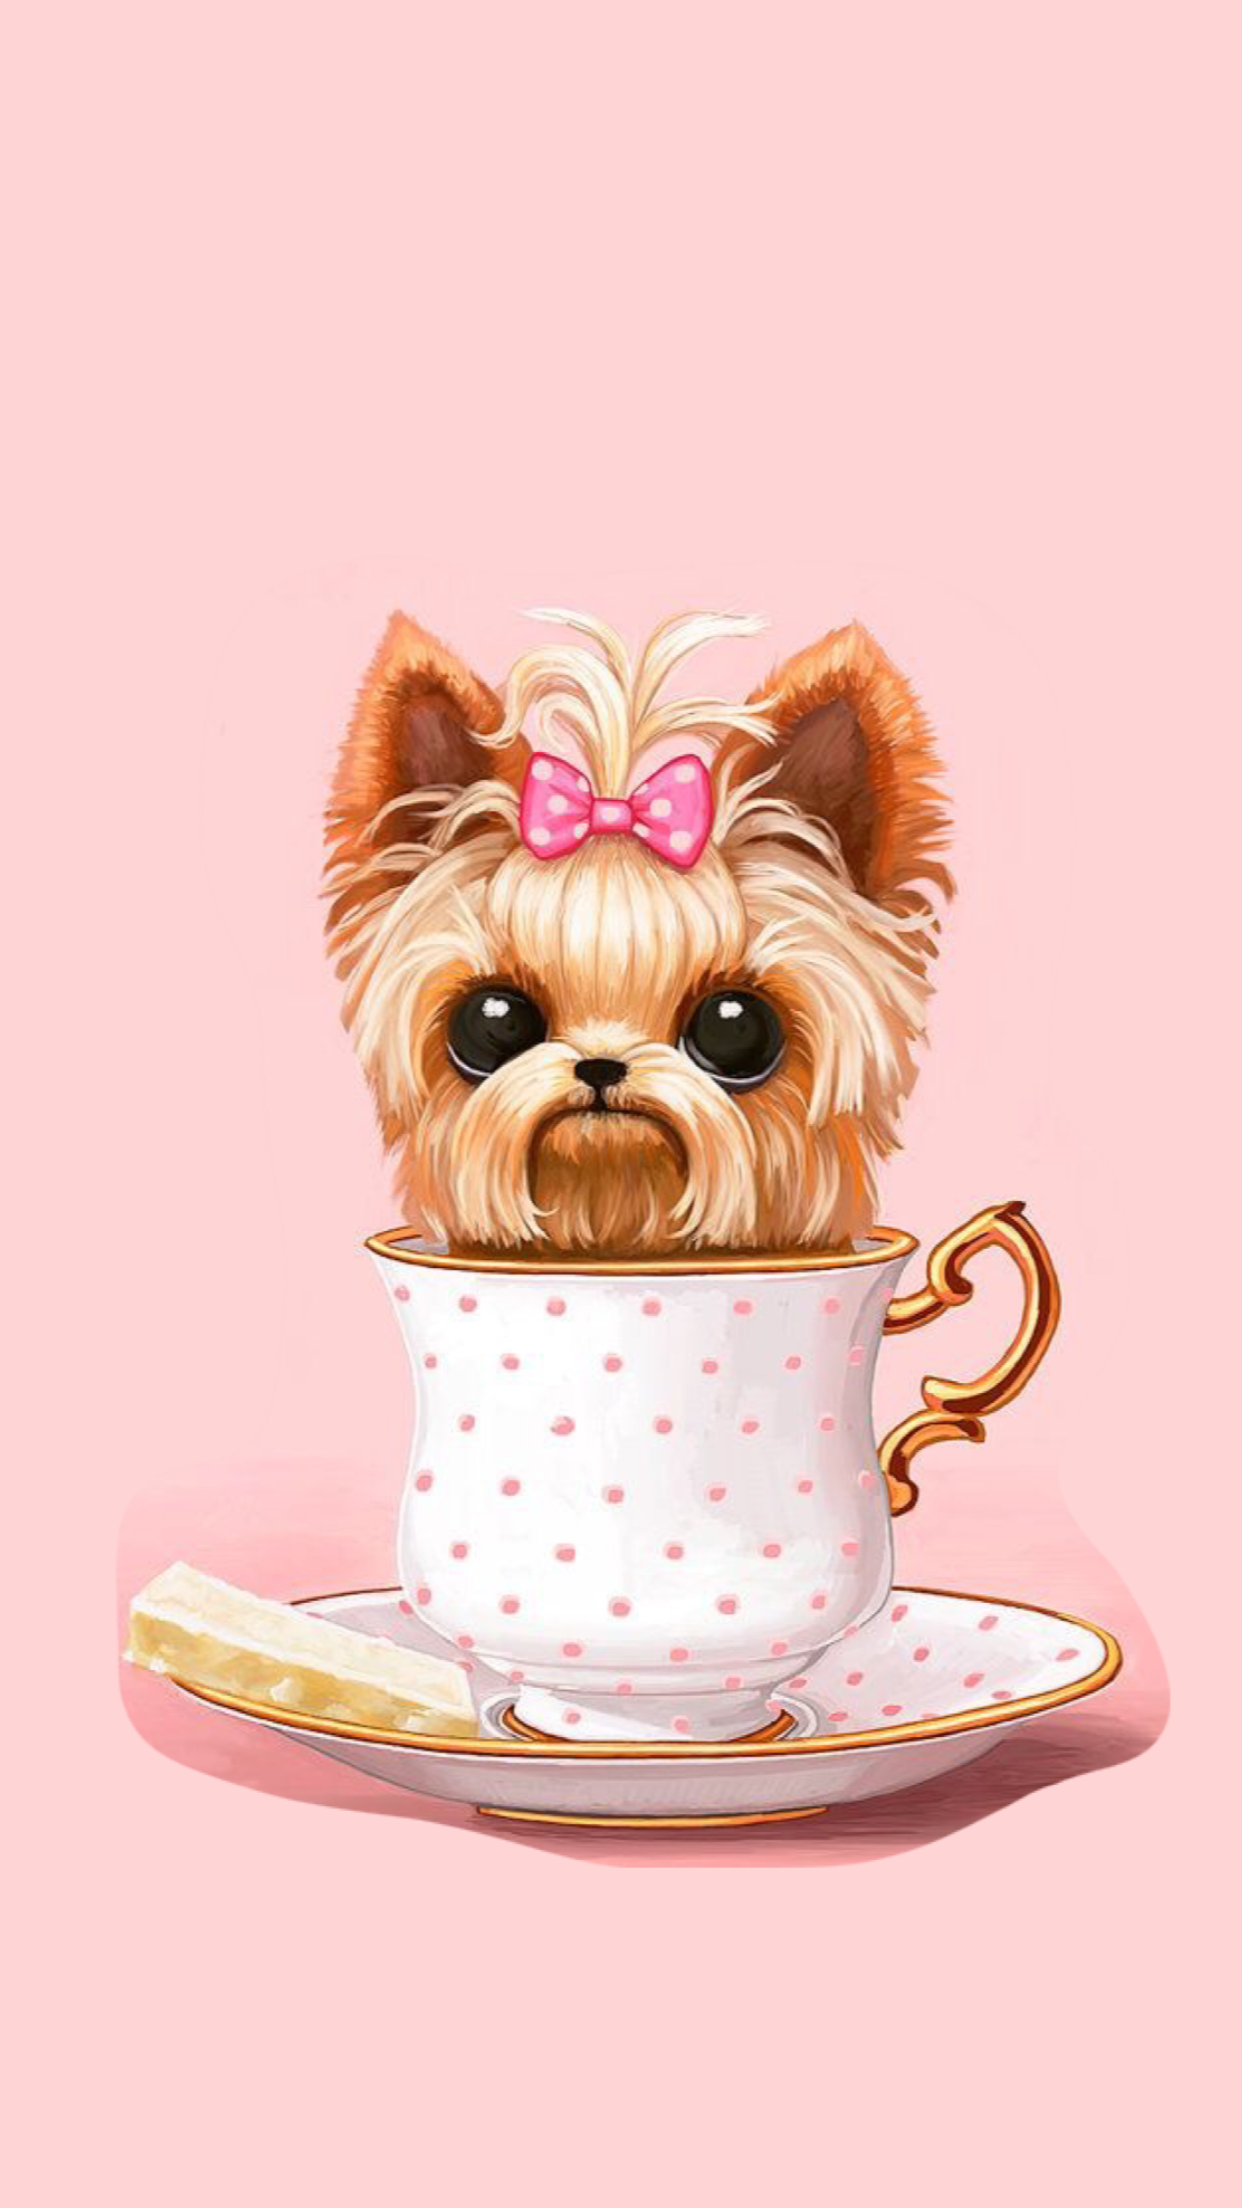 Pin de Vivien Salomon en Apple wallpapers Arte del perro